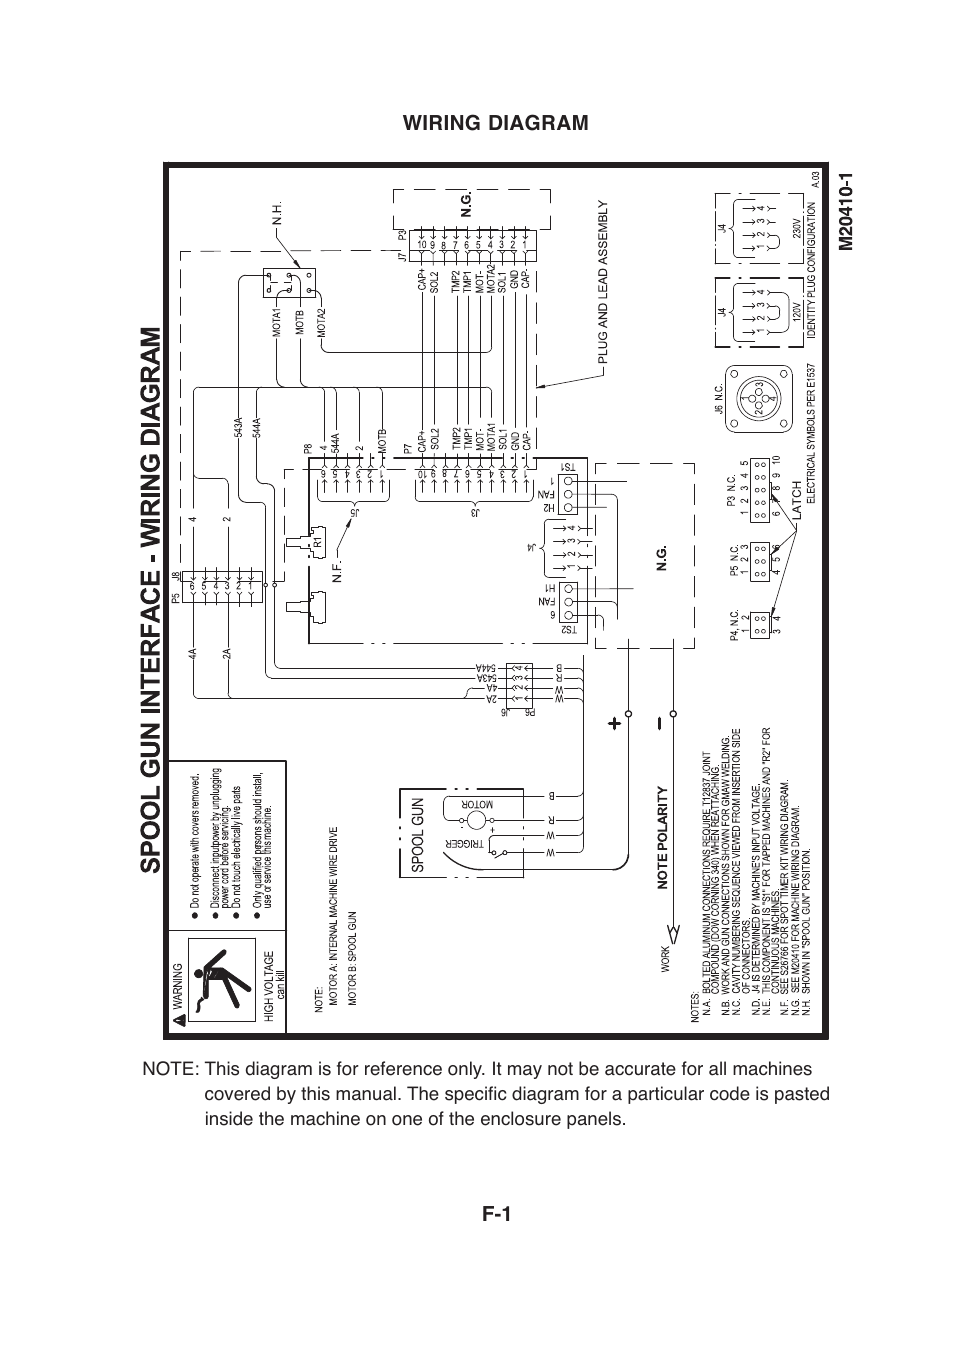 Wiring Diagram For Reference The Wiring That I Talk About